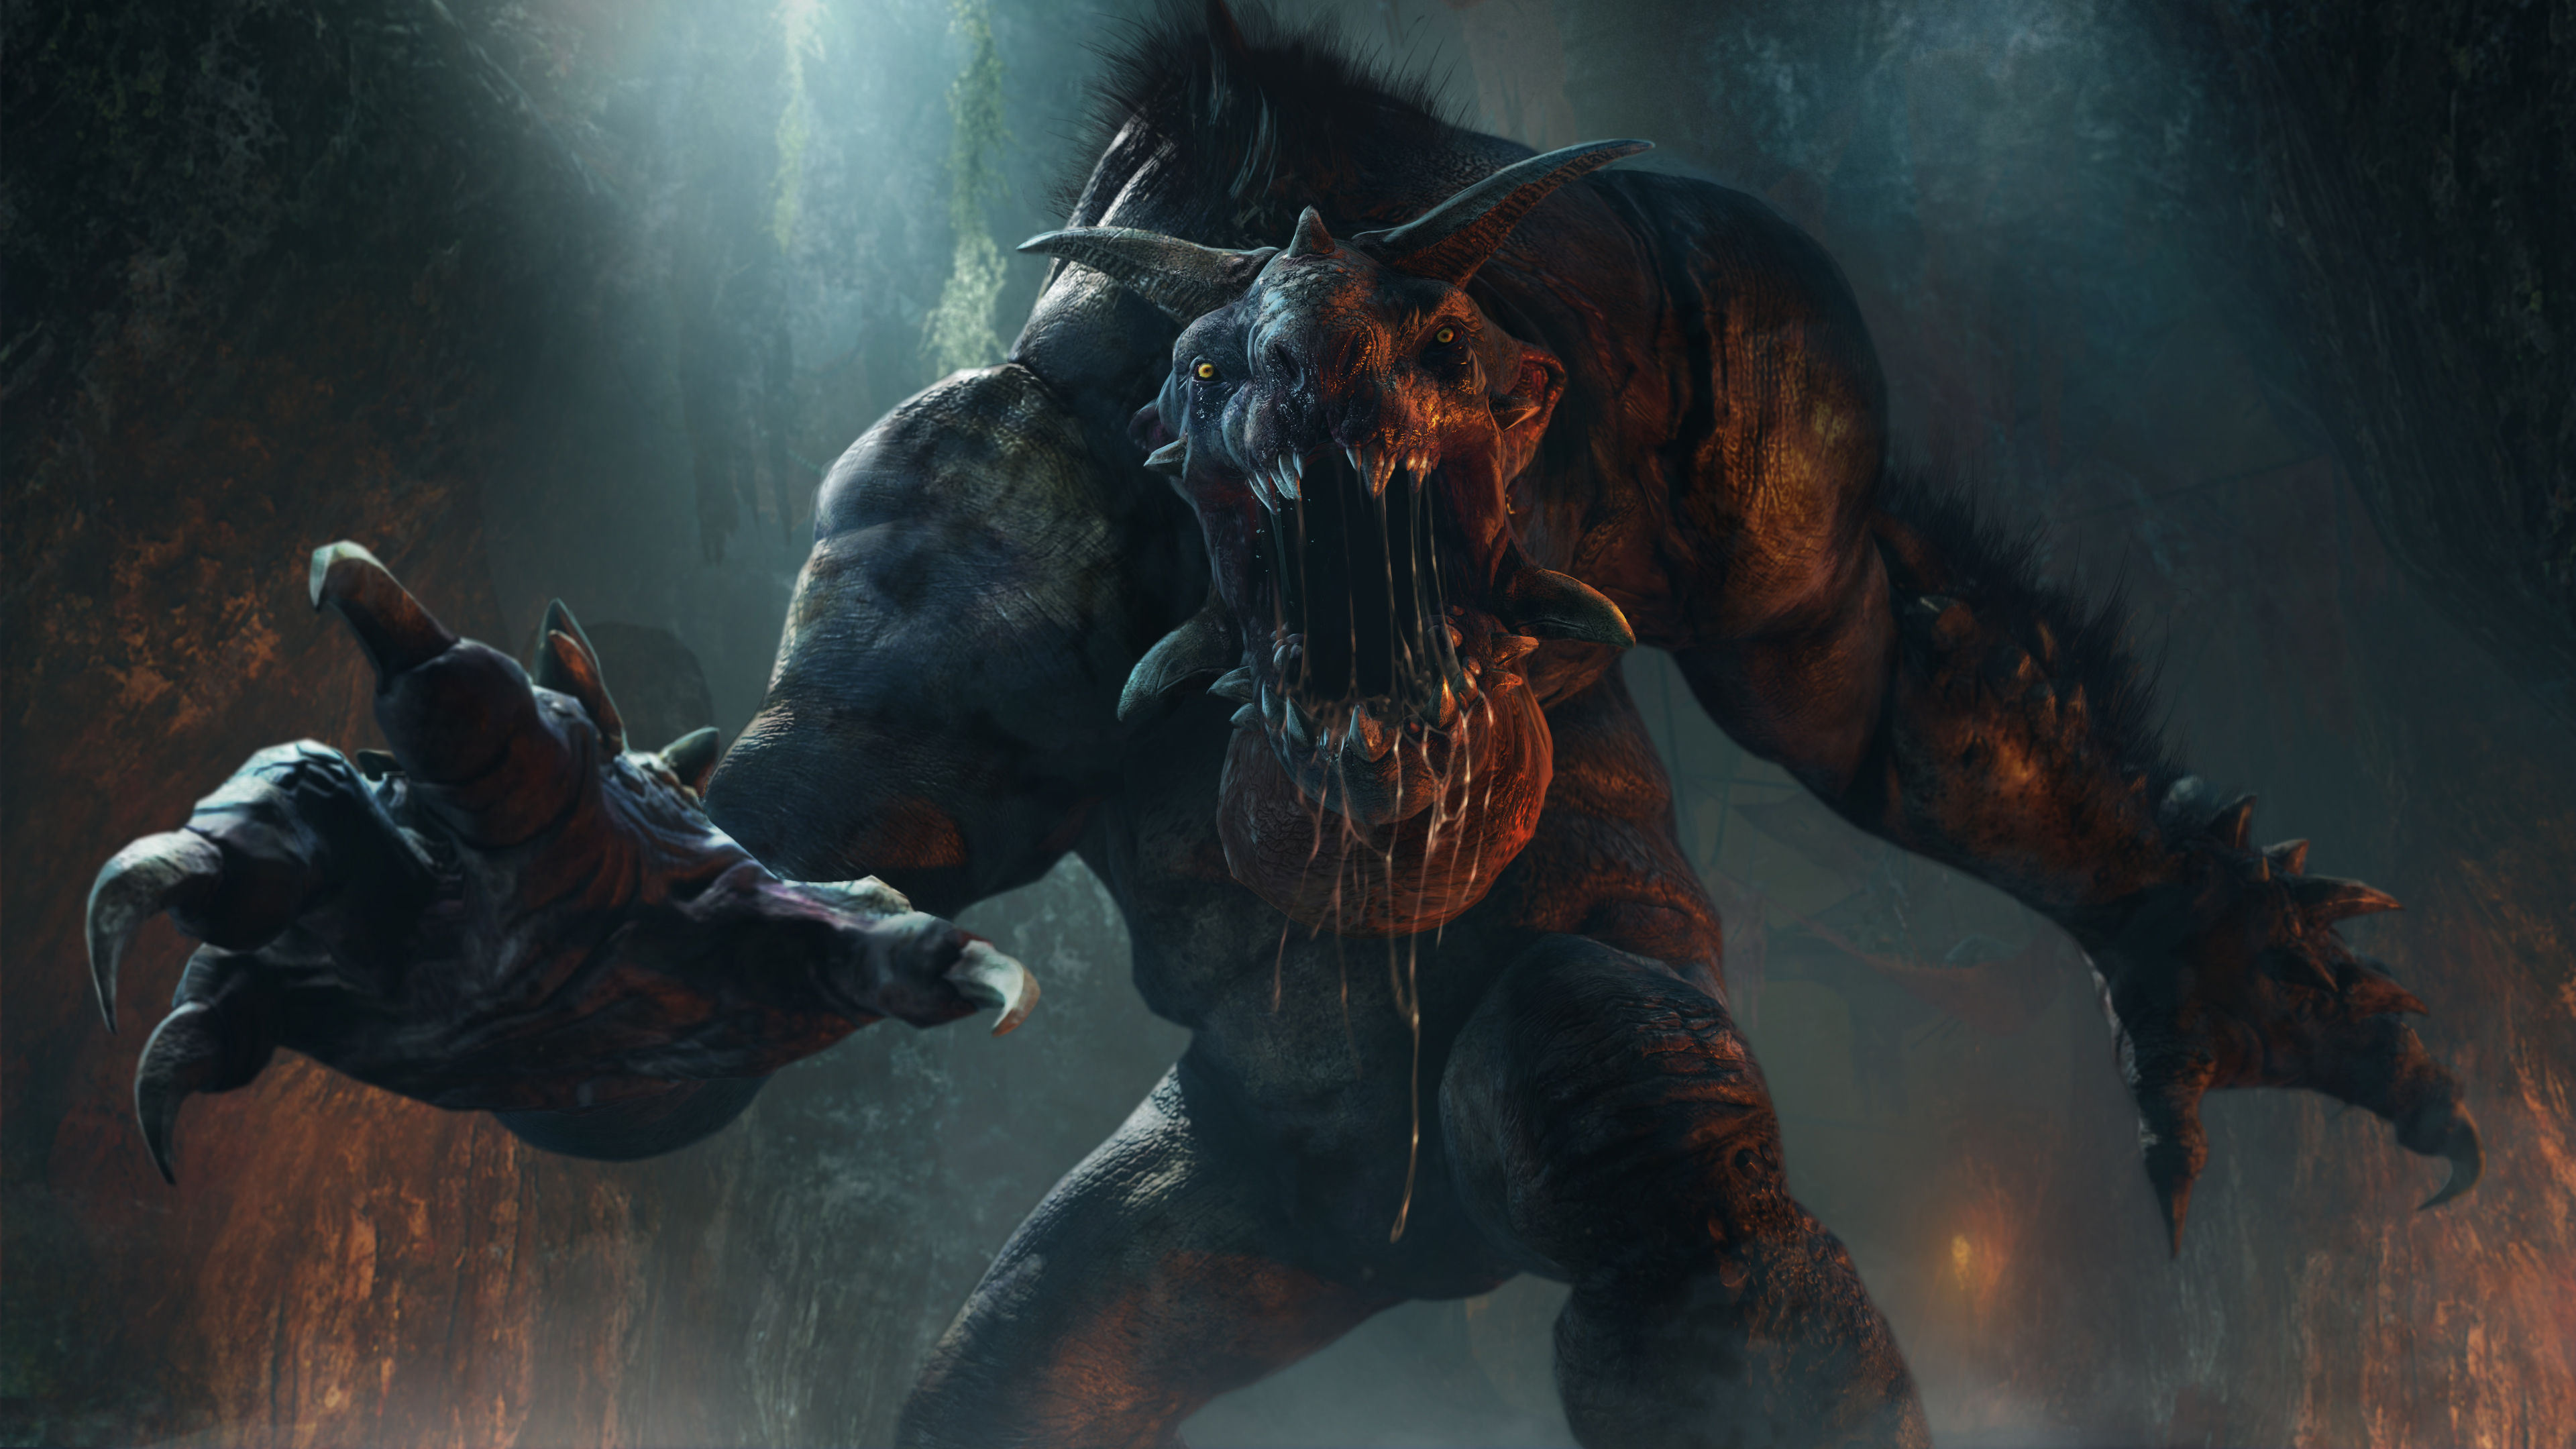 ... Lord of the Hunt skin transform Talion into the ultimate Beastmaster